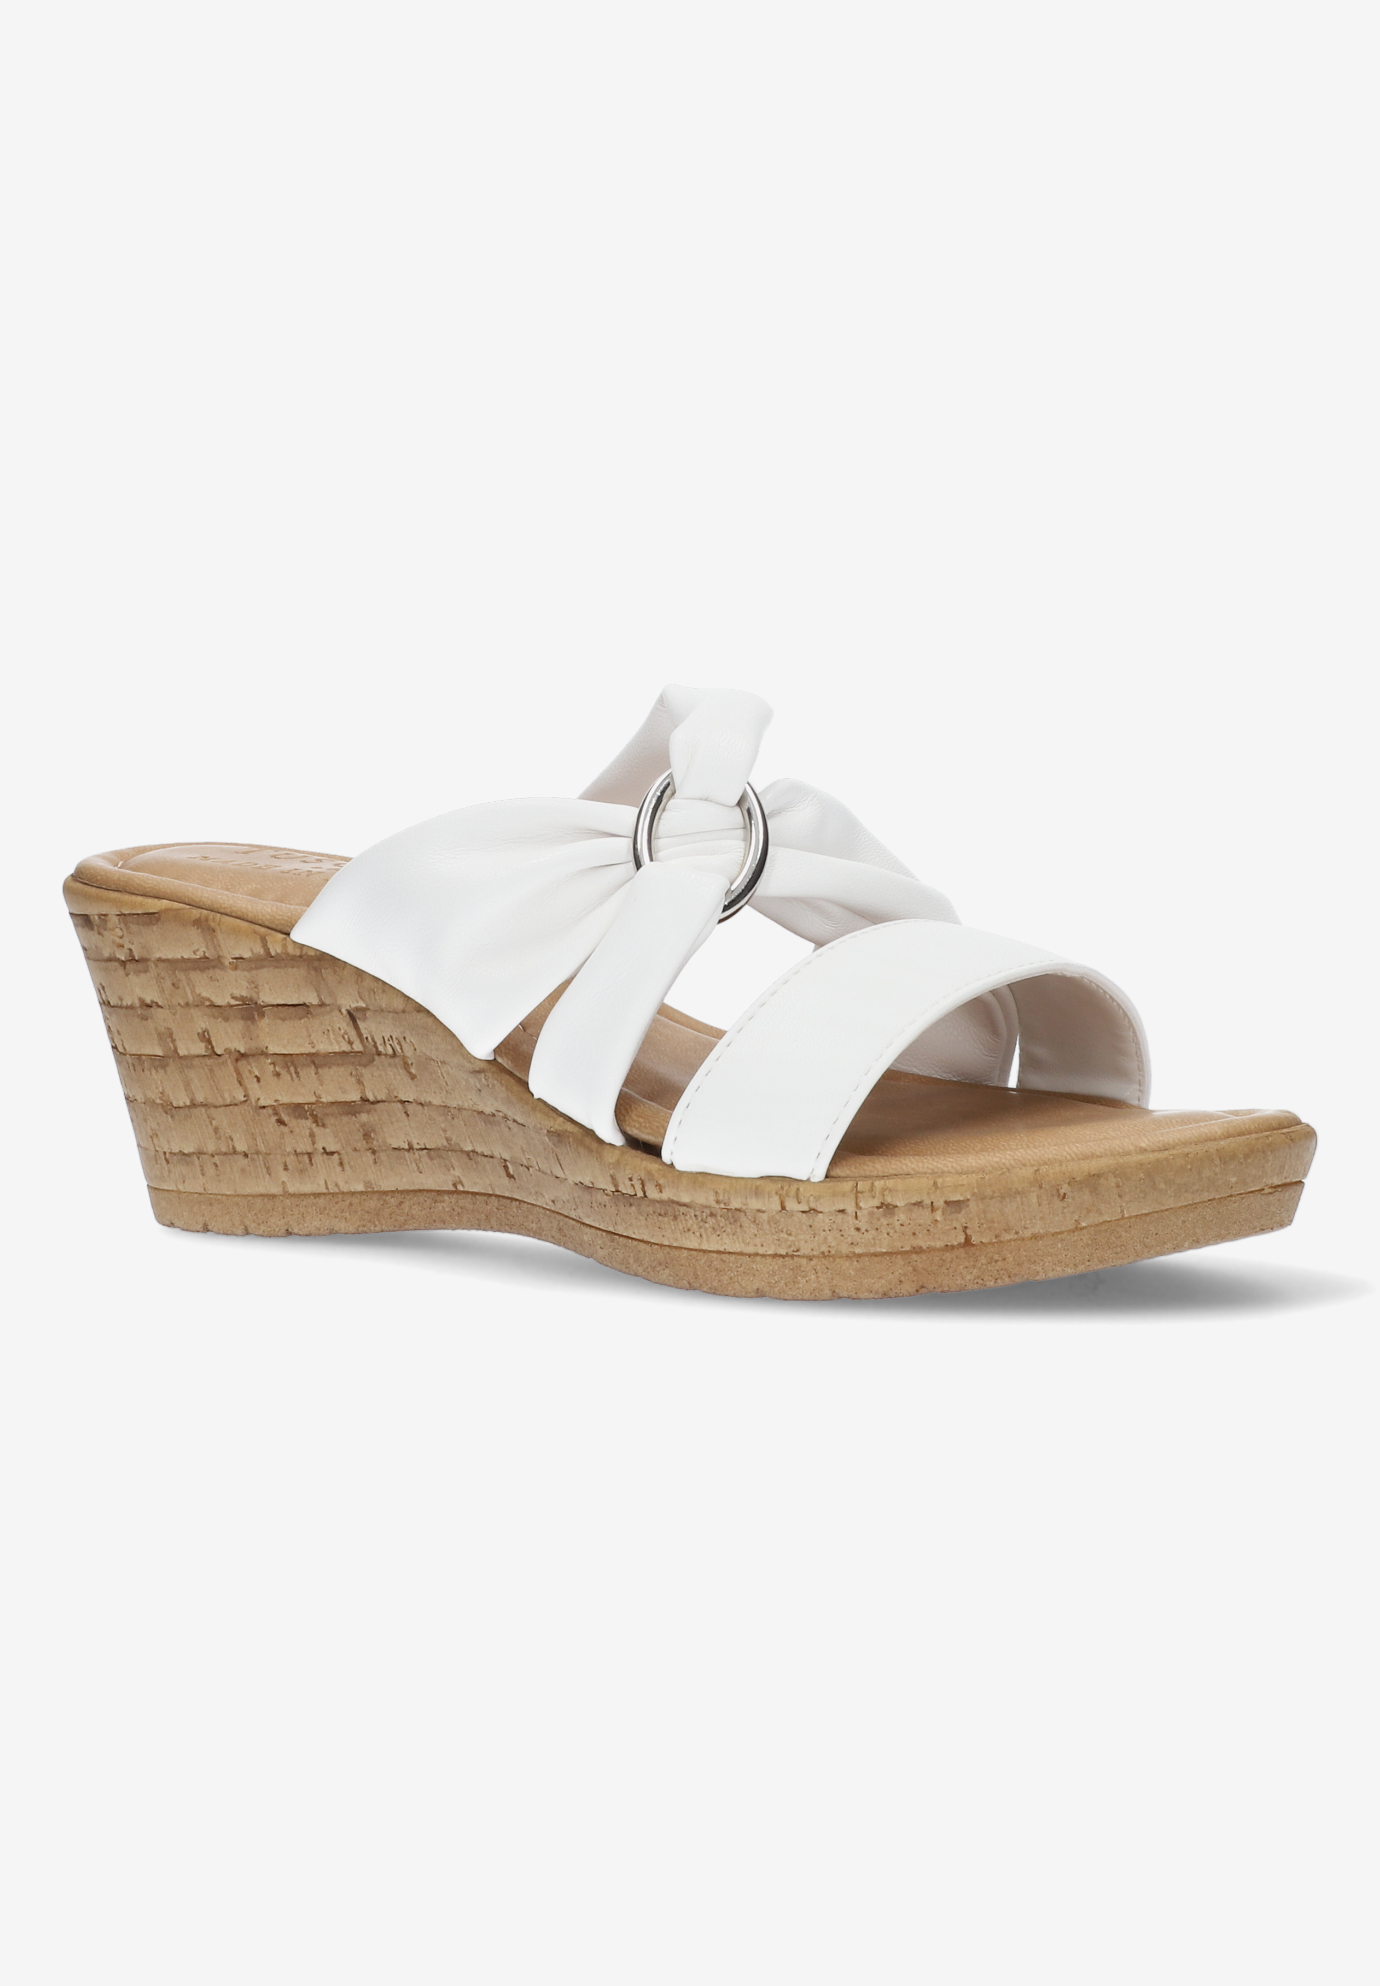 Guiliana Sandals,